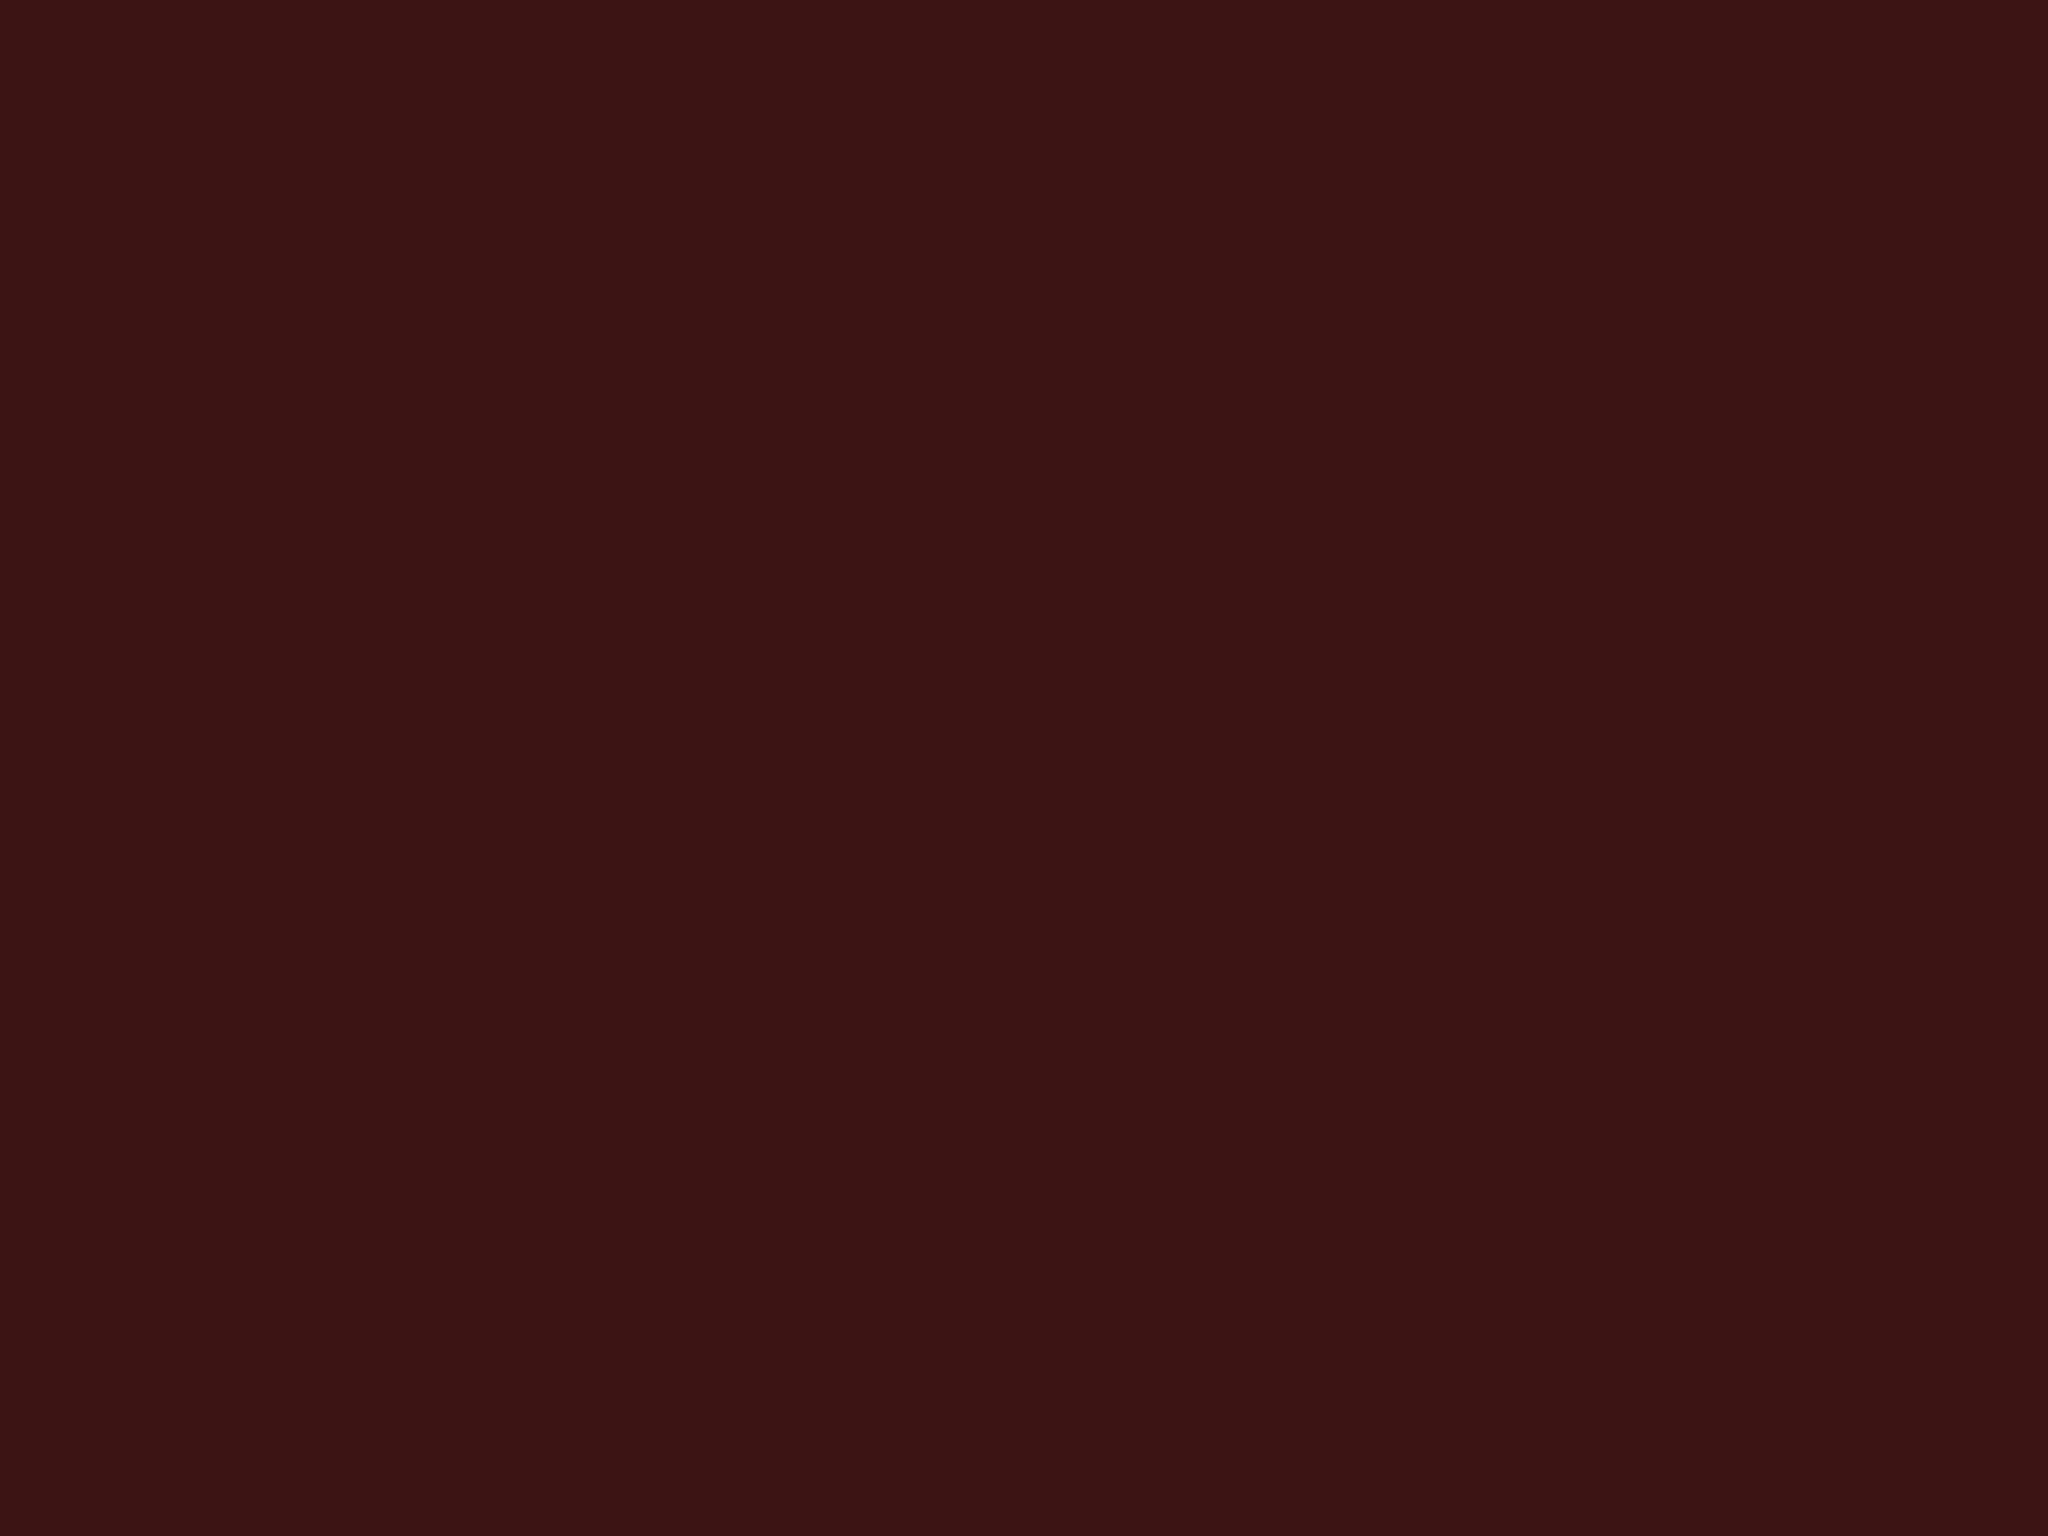 2048x1536 Dark Sienna Solid Color Background